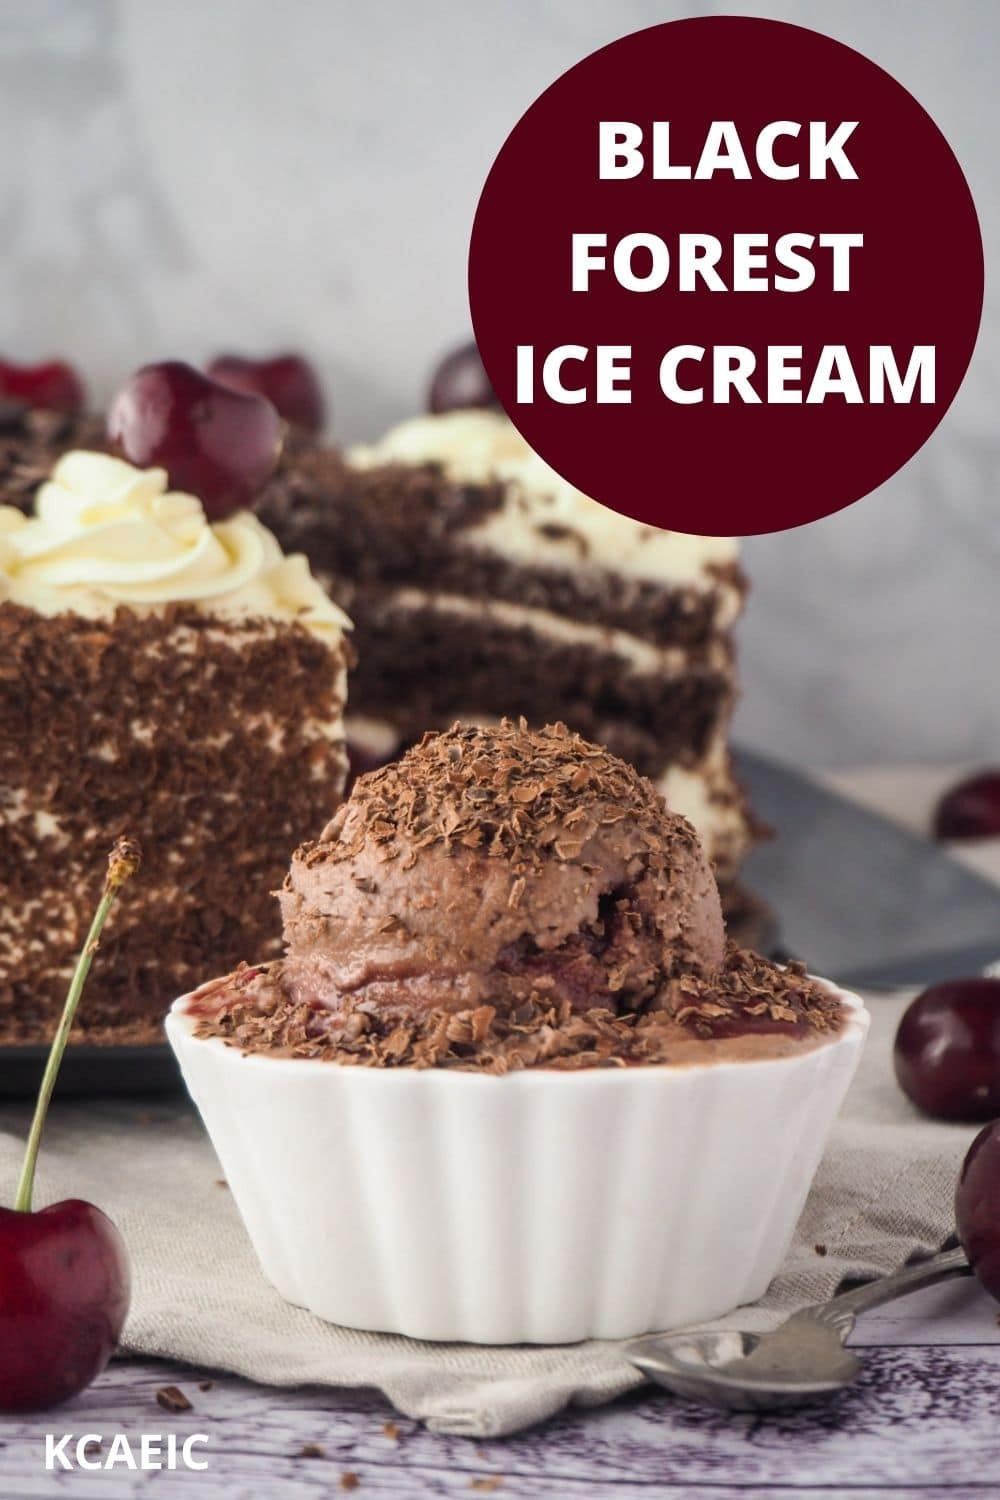 Ice cream with black forest cake in back ground, fresh cherries and text overlay, black forest ice cream and KCAEIC.